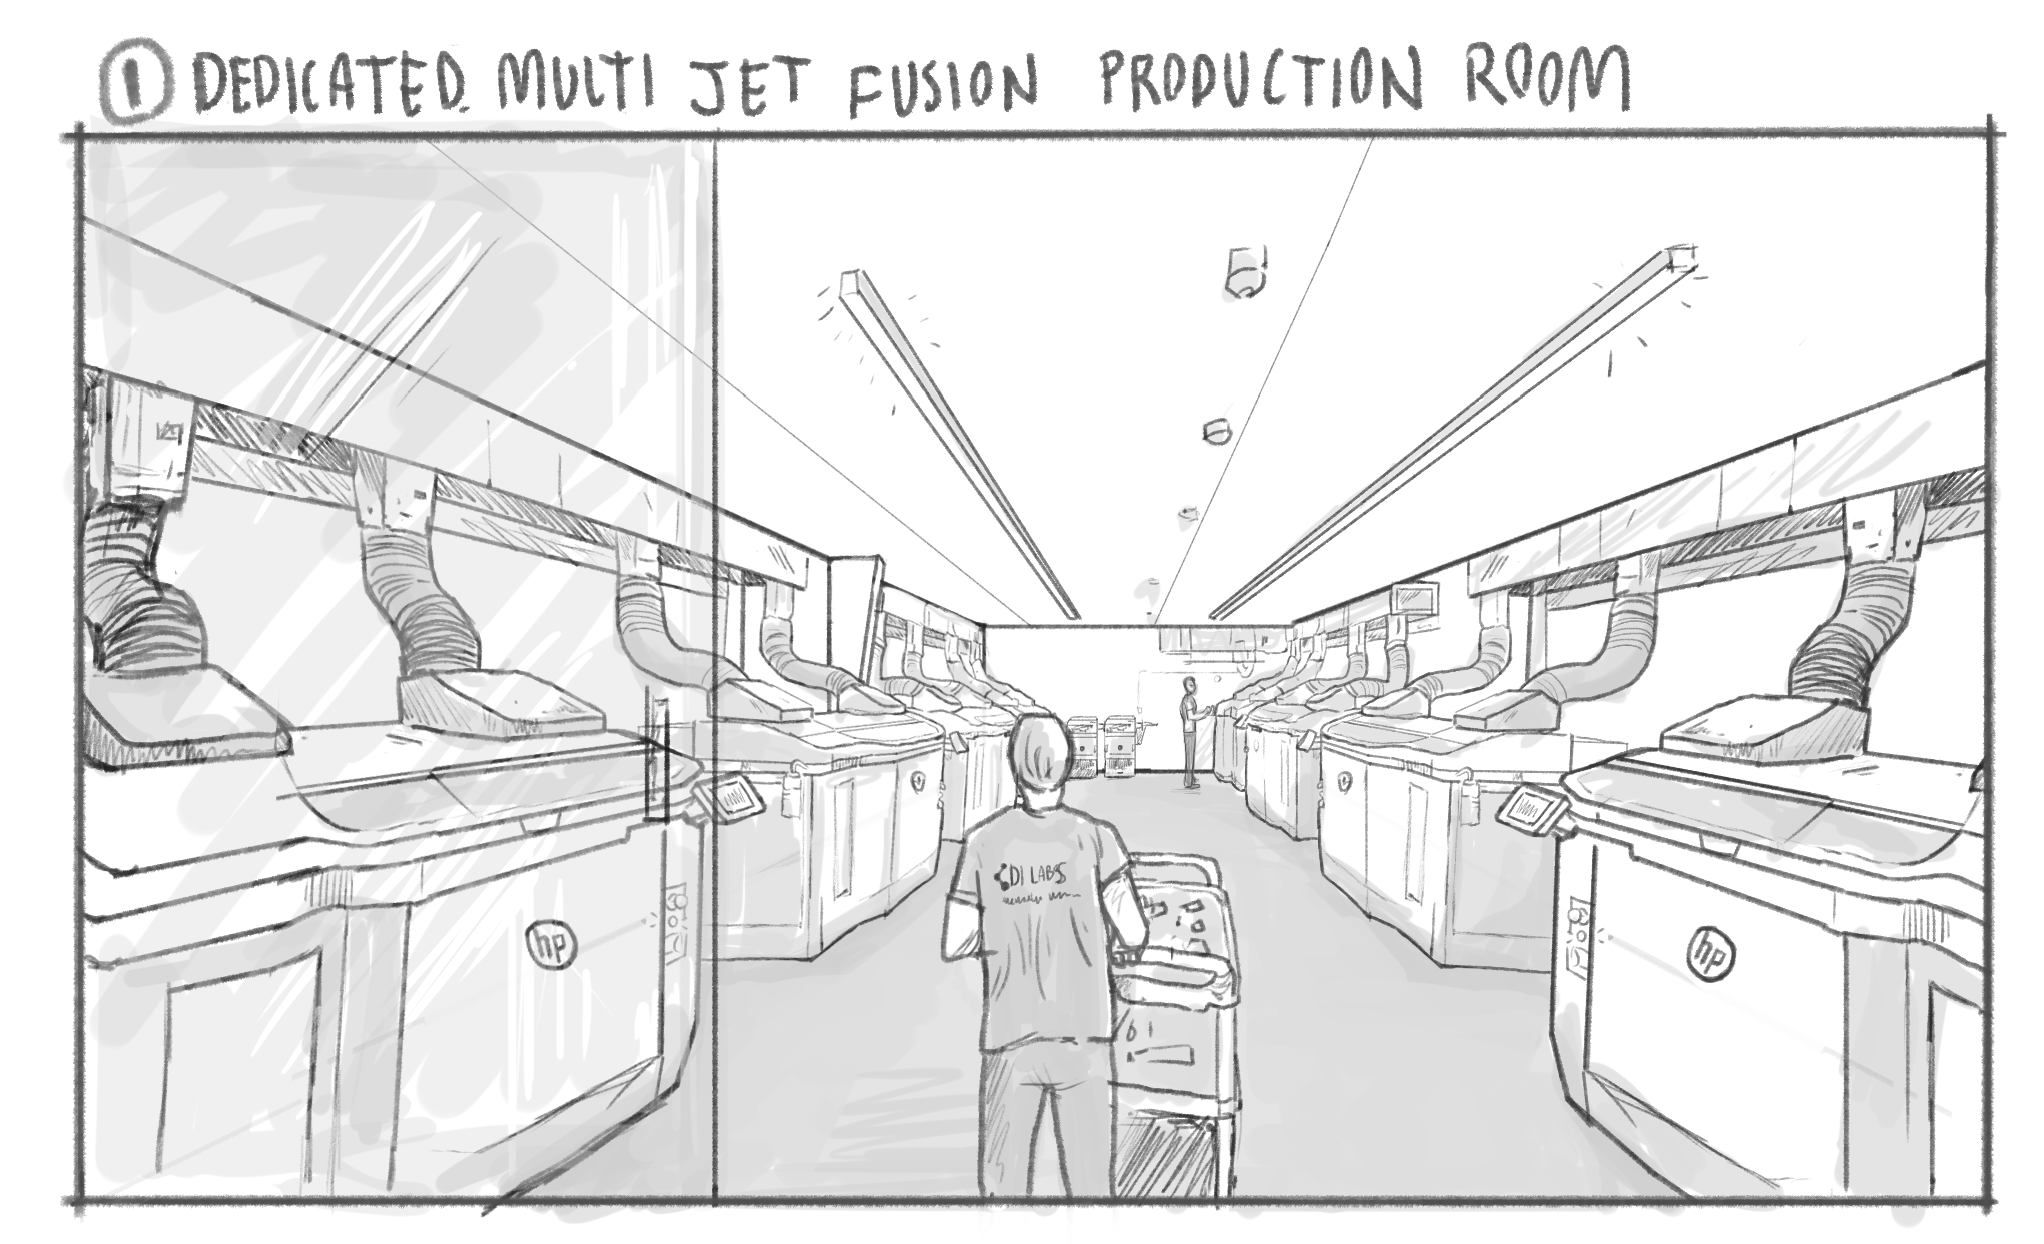 DI Labs' new facility will feature a room full of Multi-Jet Fusion (MJF) 3D printers. Image via DI Labs.